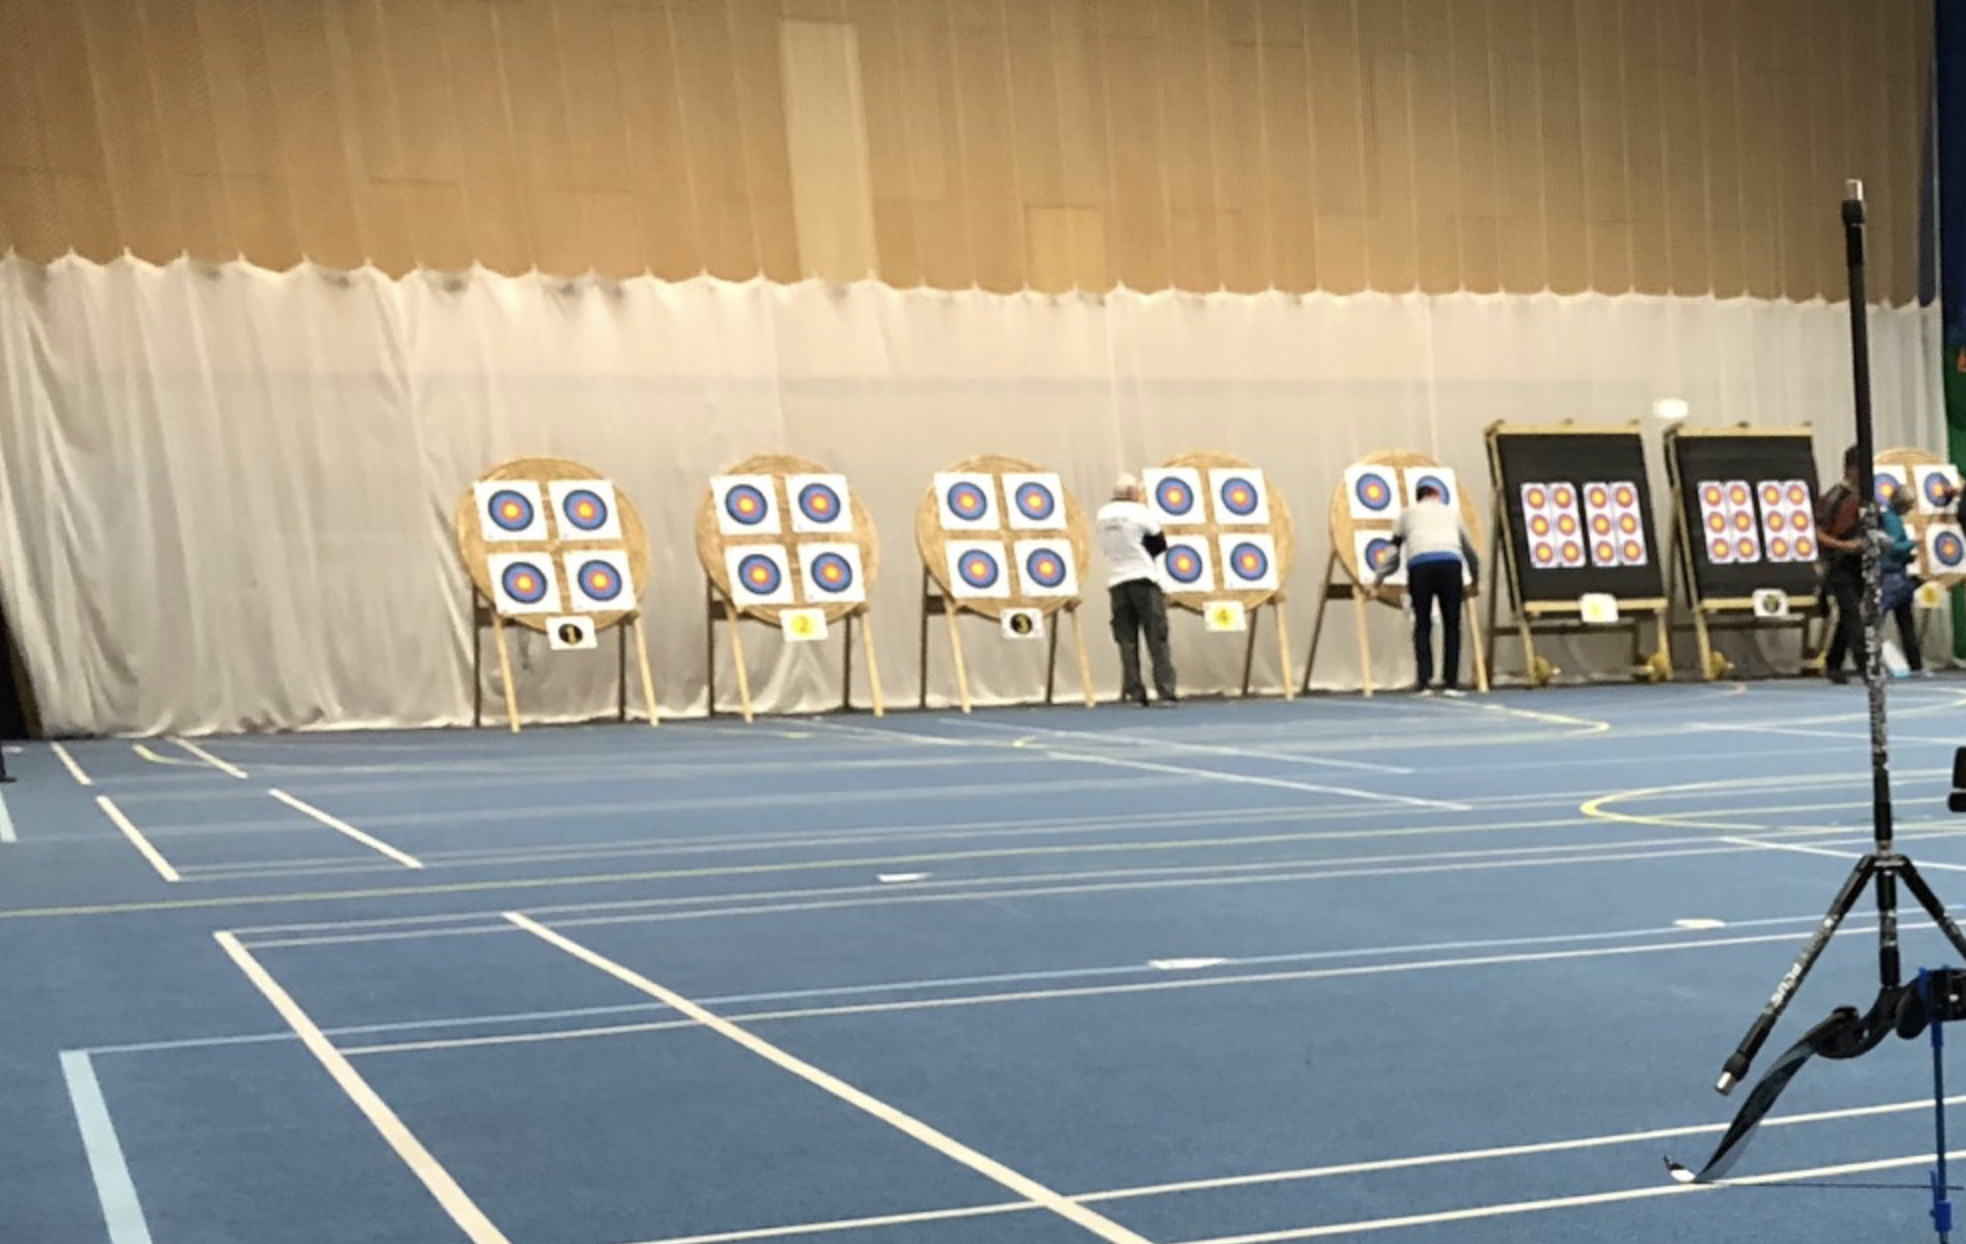 Indoor Archery at the King's Centre